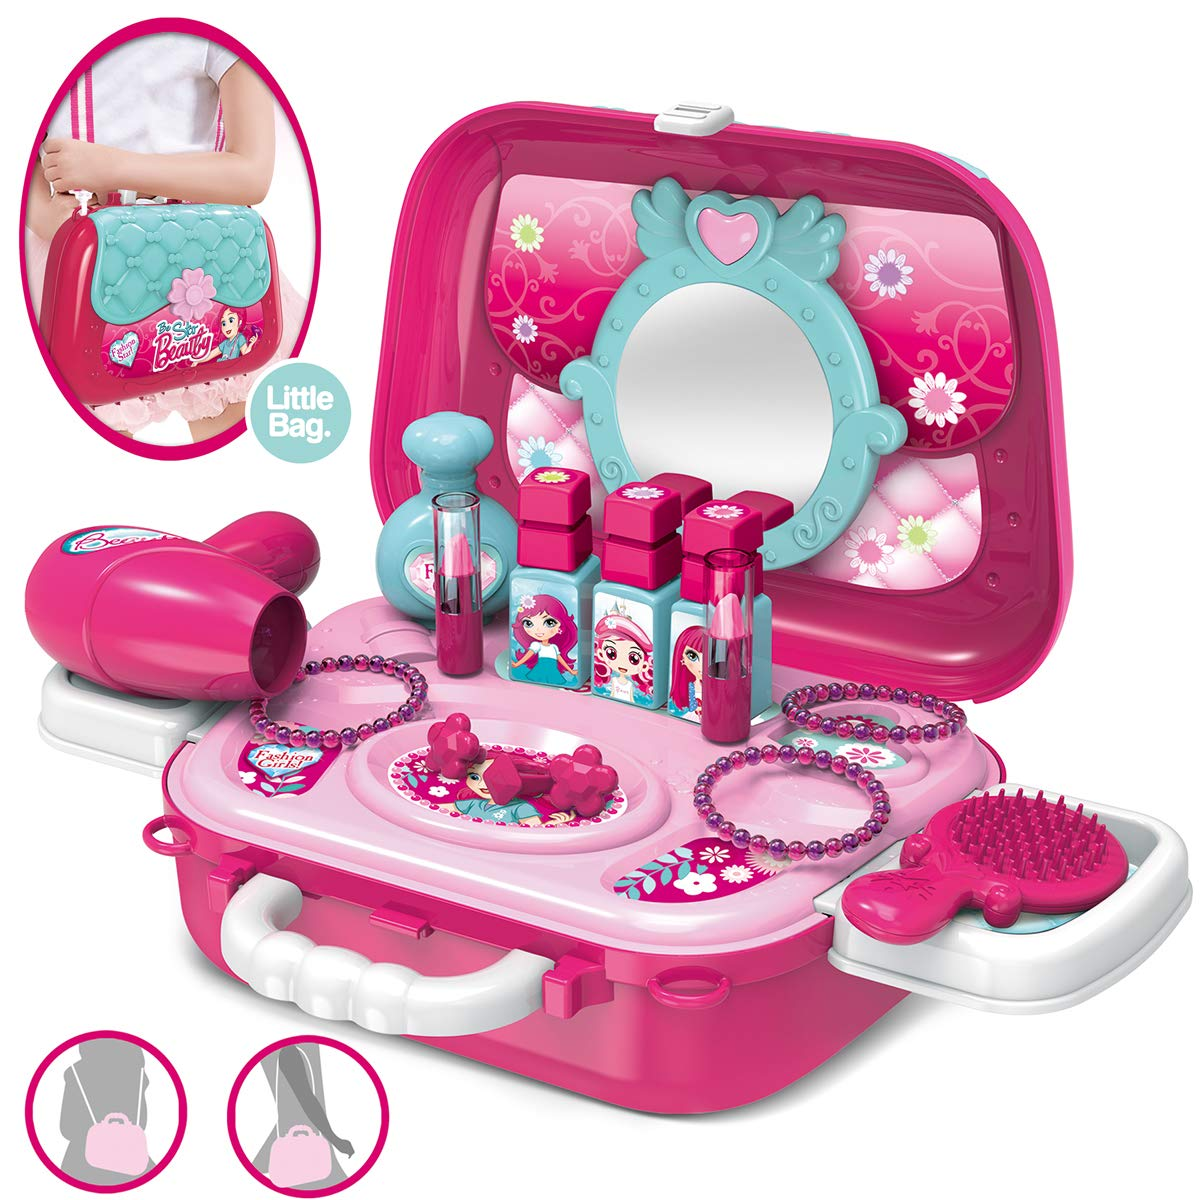 Role Play Jewelry Kit for Girls Toy Set 2 in 1 Princess Bag Gift for Girls Kids 3 Years Old by YIMORE